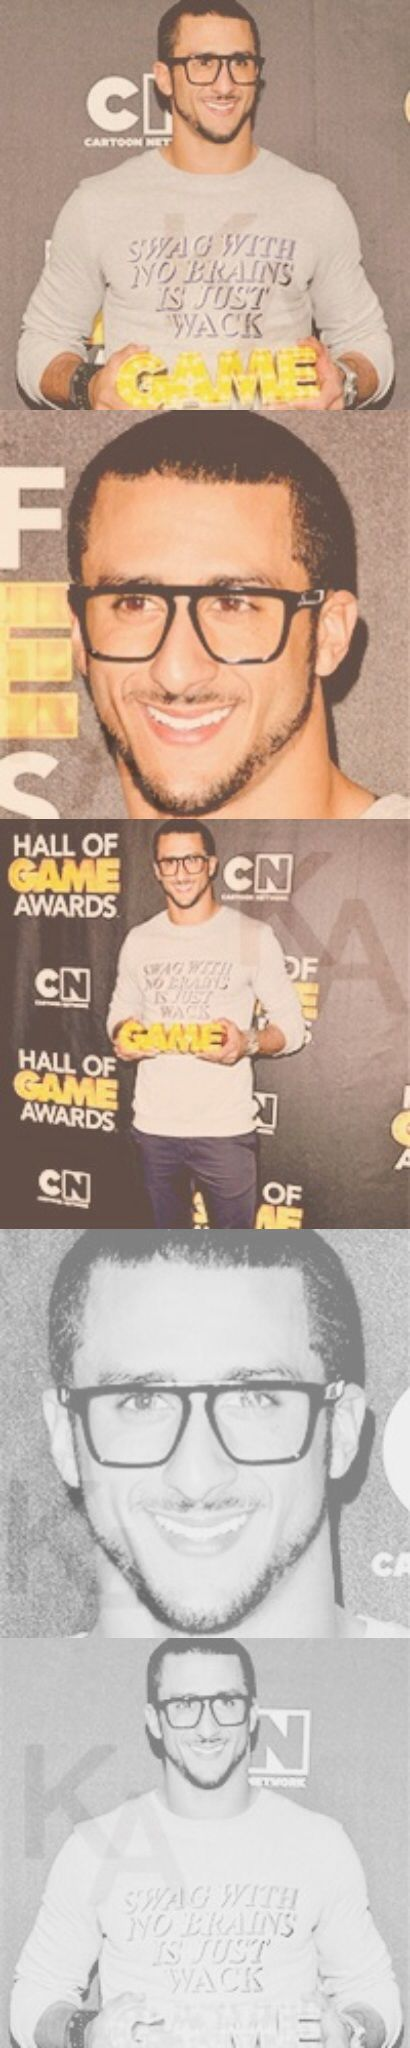 The 2389 best colin kaepernick images on pinterest colin colin kaepernick looking spiffy as alwayslove the nerdy glasses his thermal voltagebd Images